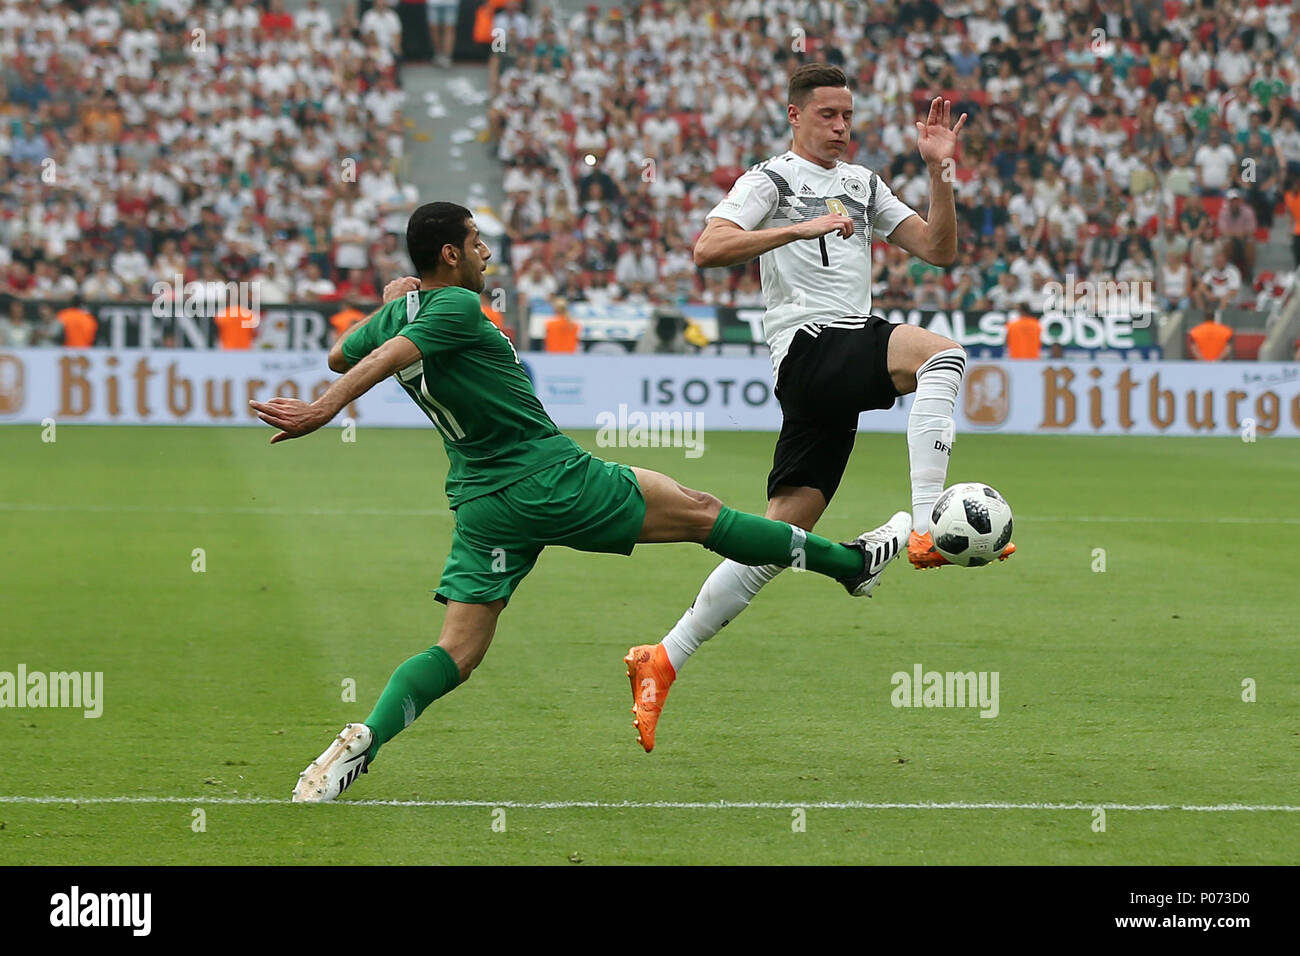 Leverkusen. 8th June, 2018. Julian Draxler (R) of Germany competes during the international friendly match between Germany and Saudi Arabia at Bay Arena on June 8, 2018 in Leverkusen, Germany. Credit: Ulrich Hufnagel/Xinhua/Alamy Live News Stock Photo